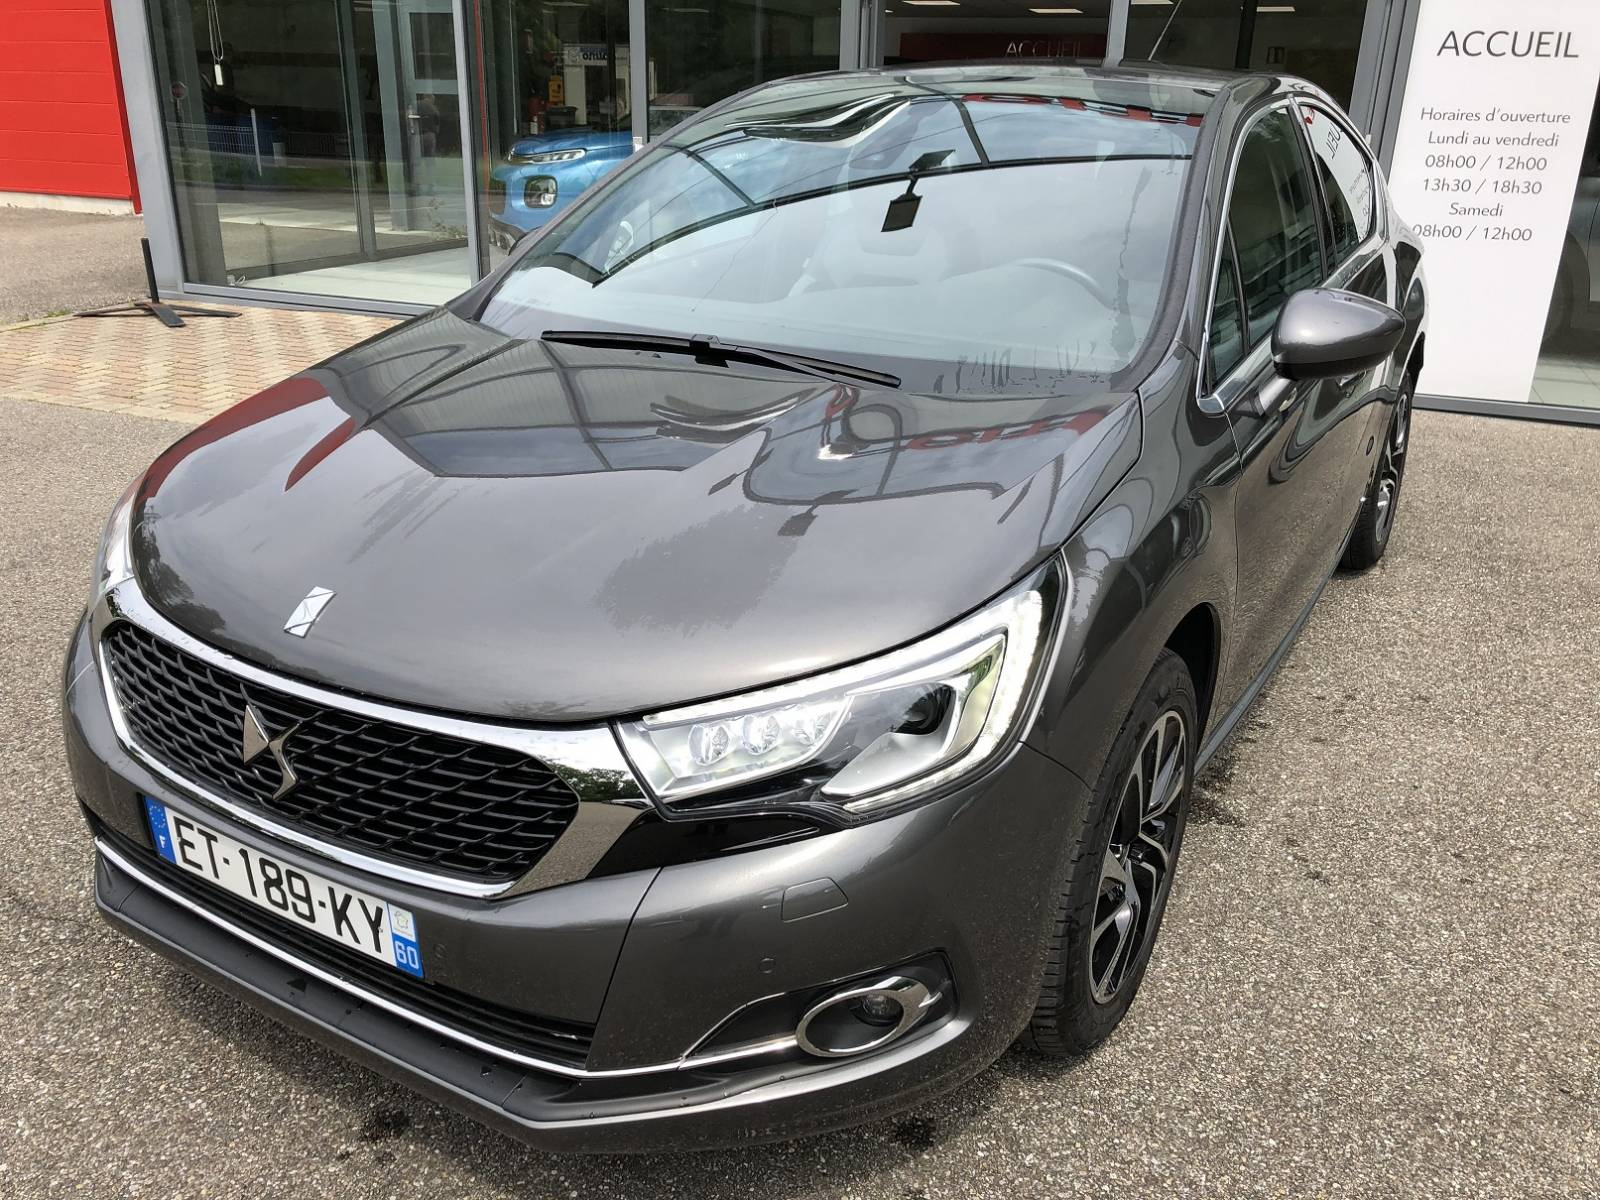 Voiture d'occasion, DS4 BlueHDI 120 SO CHIC, Boite ...